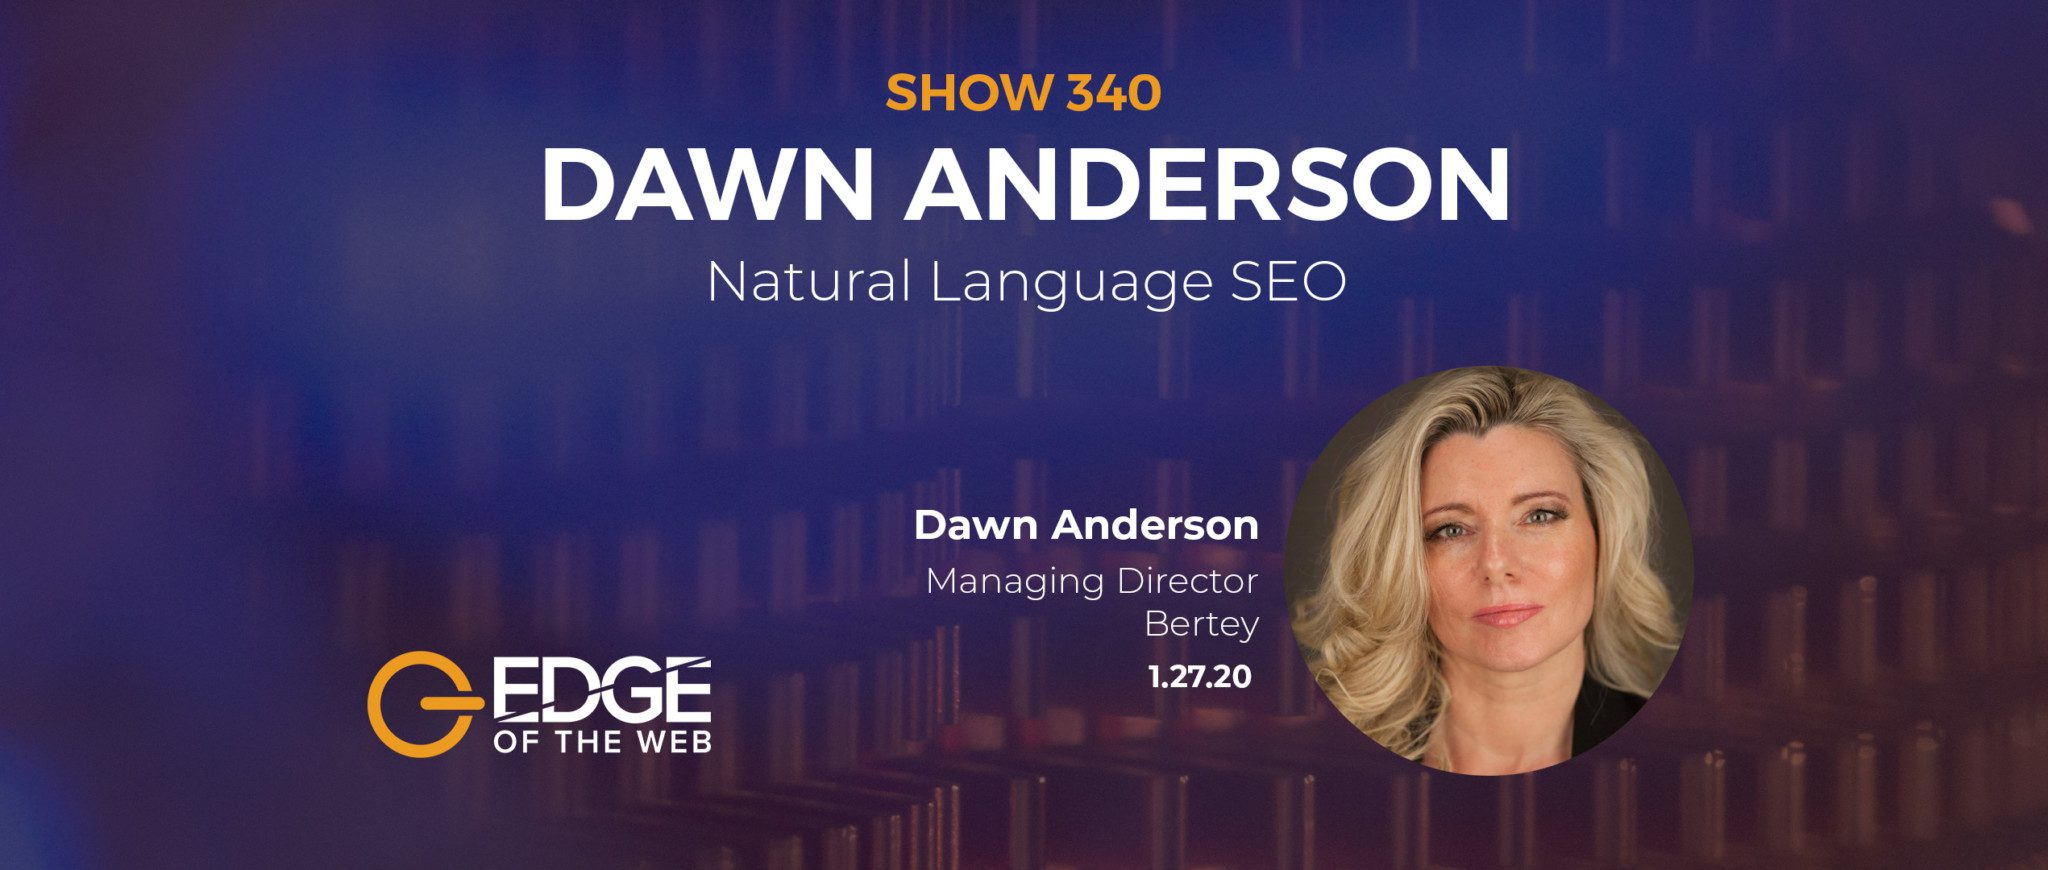 Show 340: Natural Language SEO, featuring Dawn Anderson